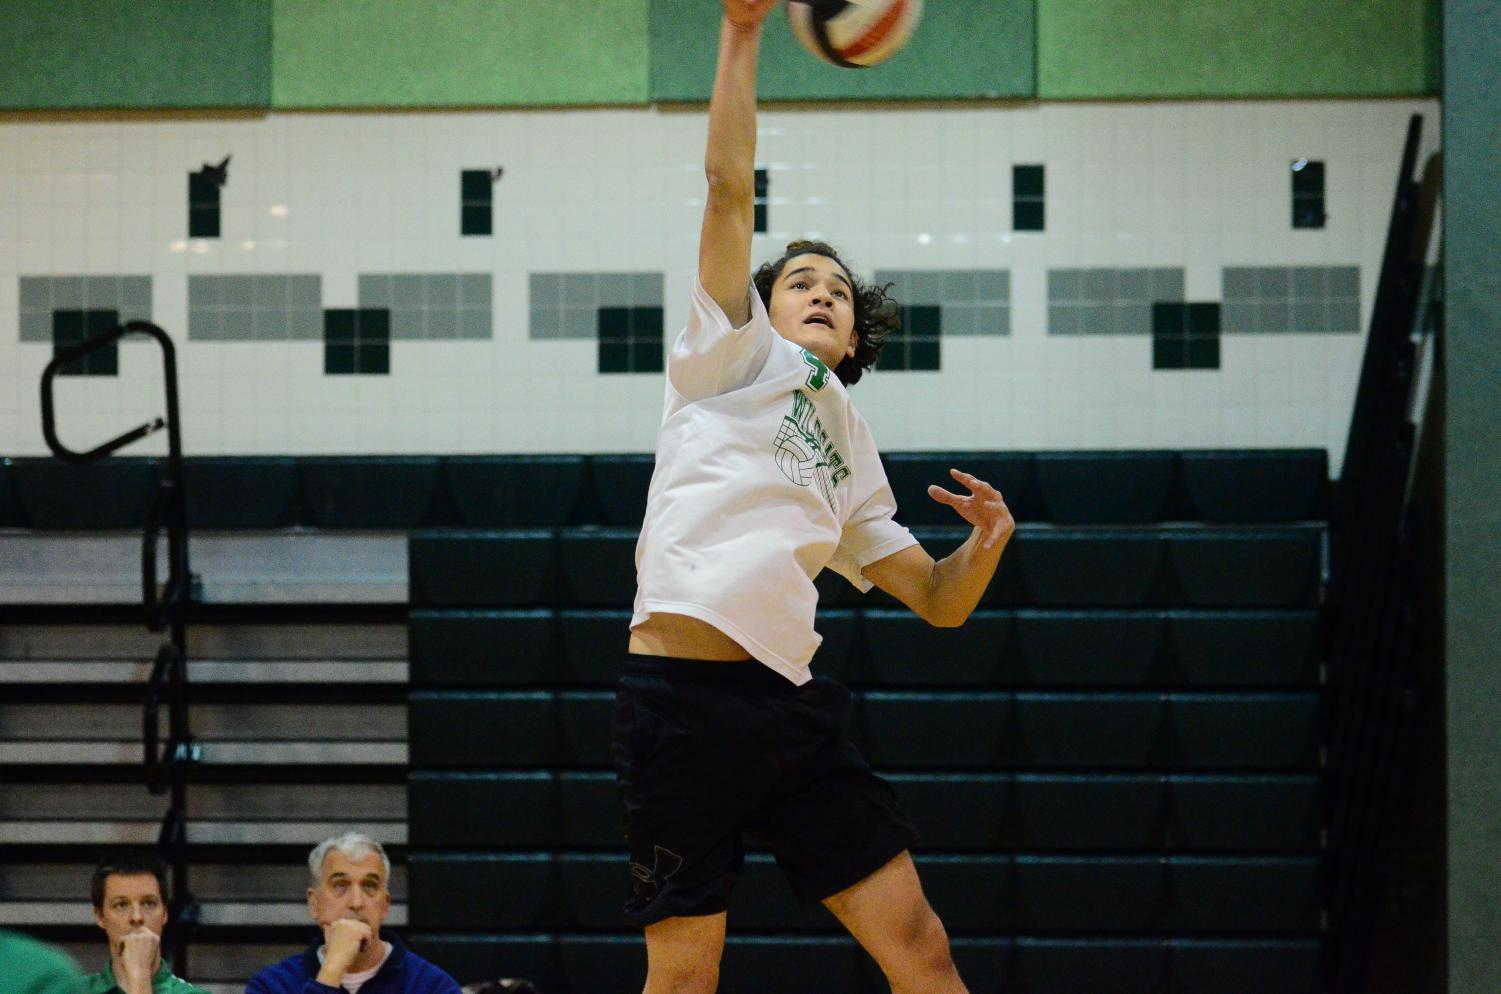 Senior Patrick Domenche spikes the ball over the net in their last match.